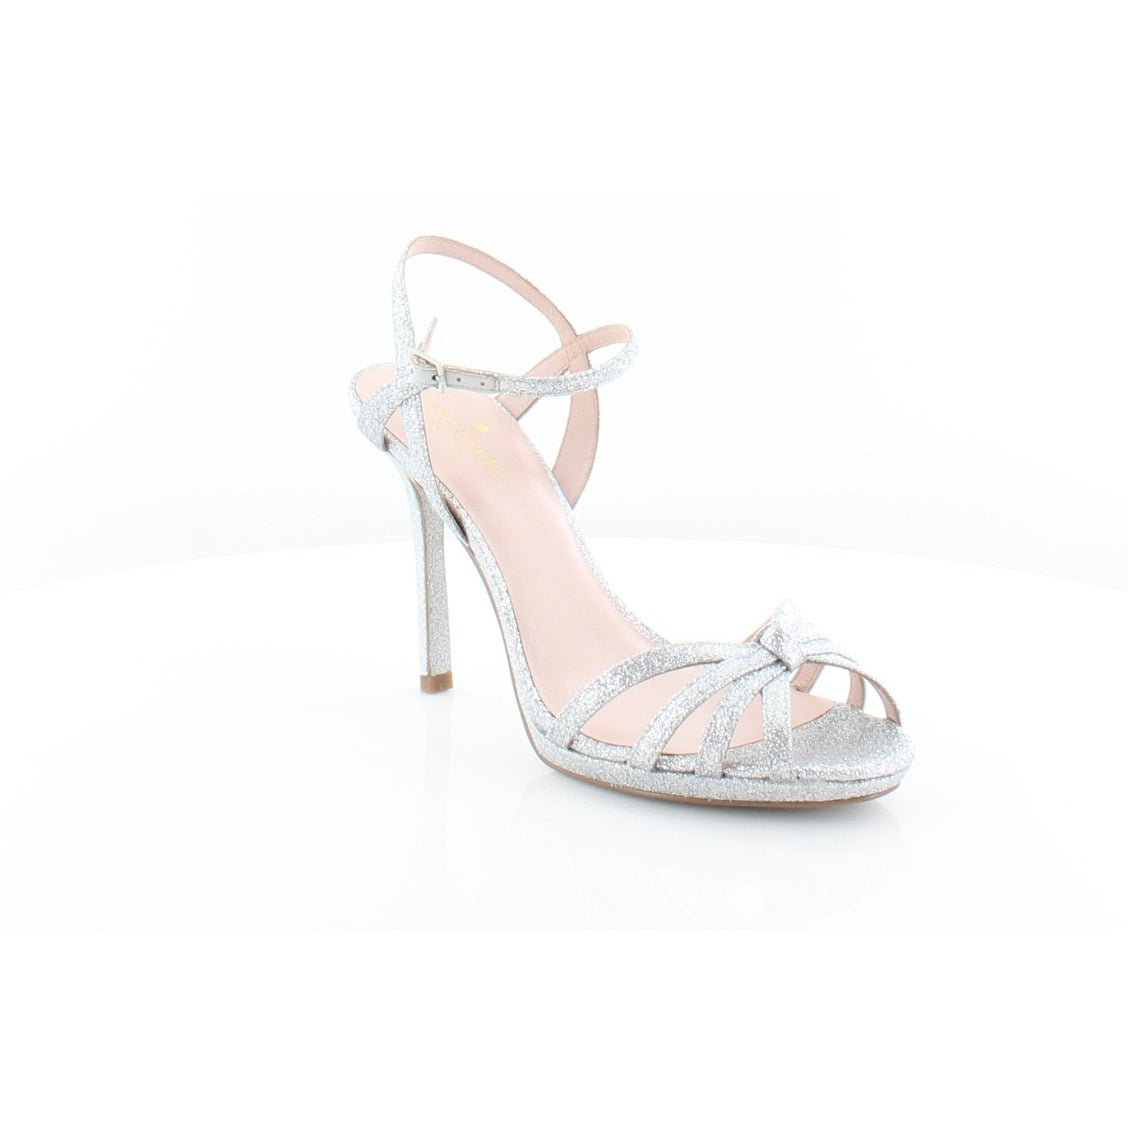 7a0a0023e2c Shop Kate Spade Florence Women s Heels Silver Thin Glitter - 8.5 - Free  Shipping Today - Overstock - 25685801